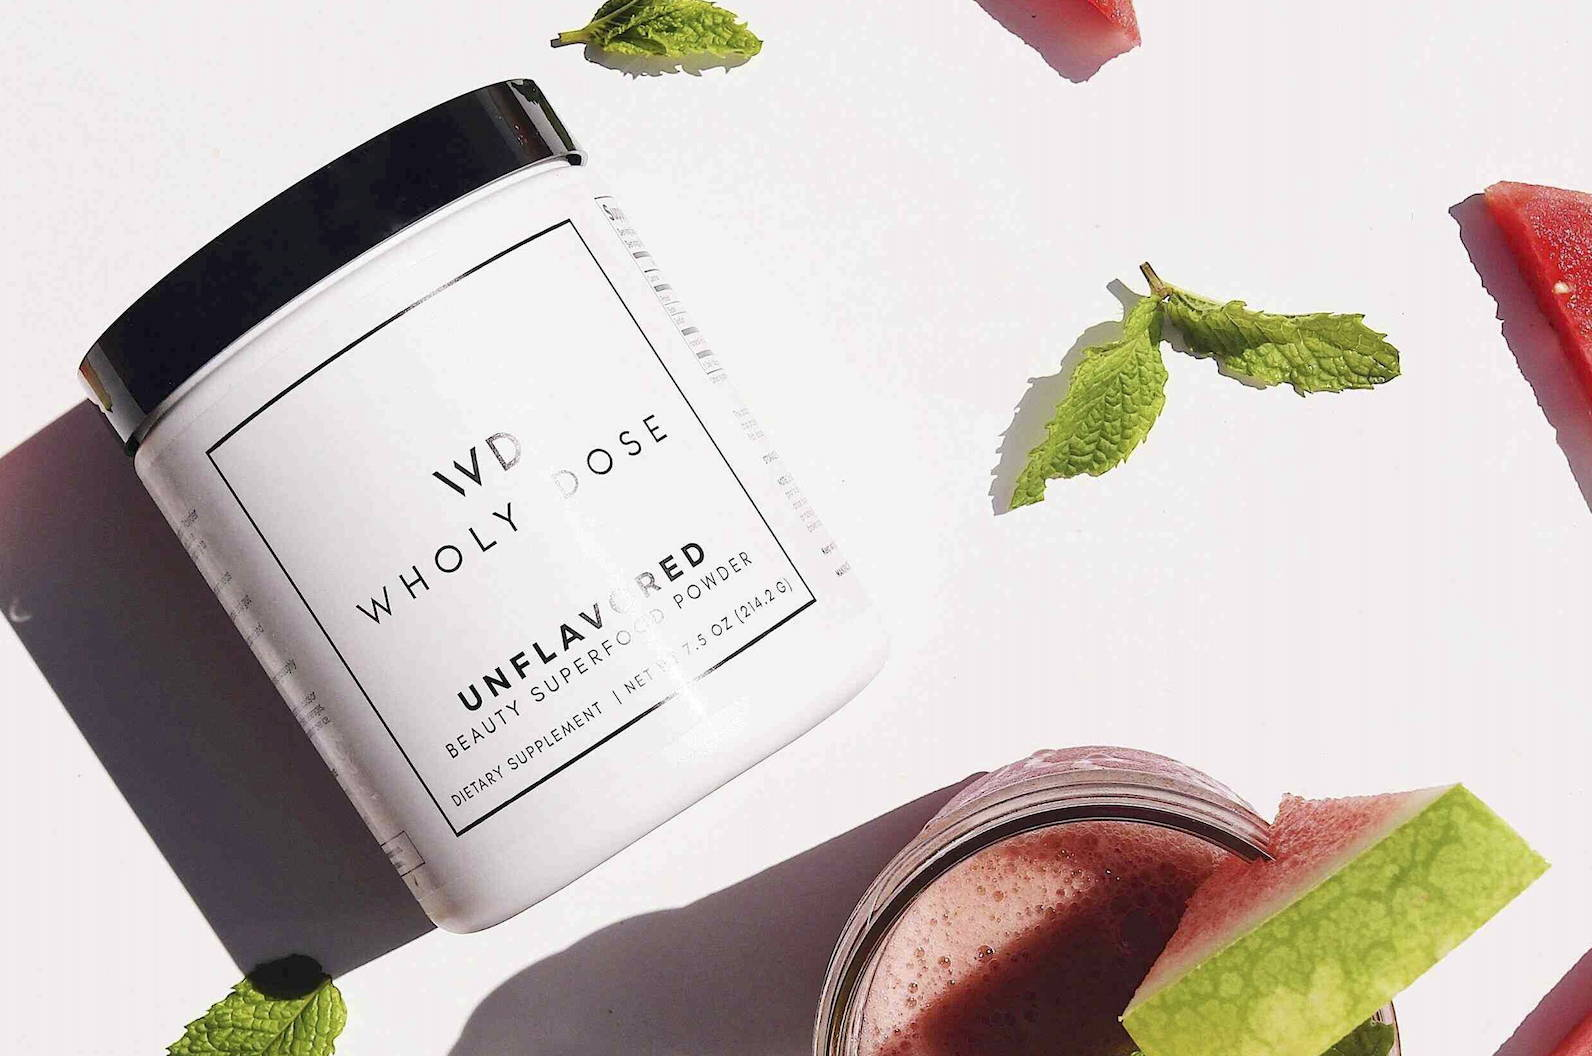 the-talent-hack-wellness-collagen-brand-wholy-dose